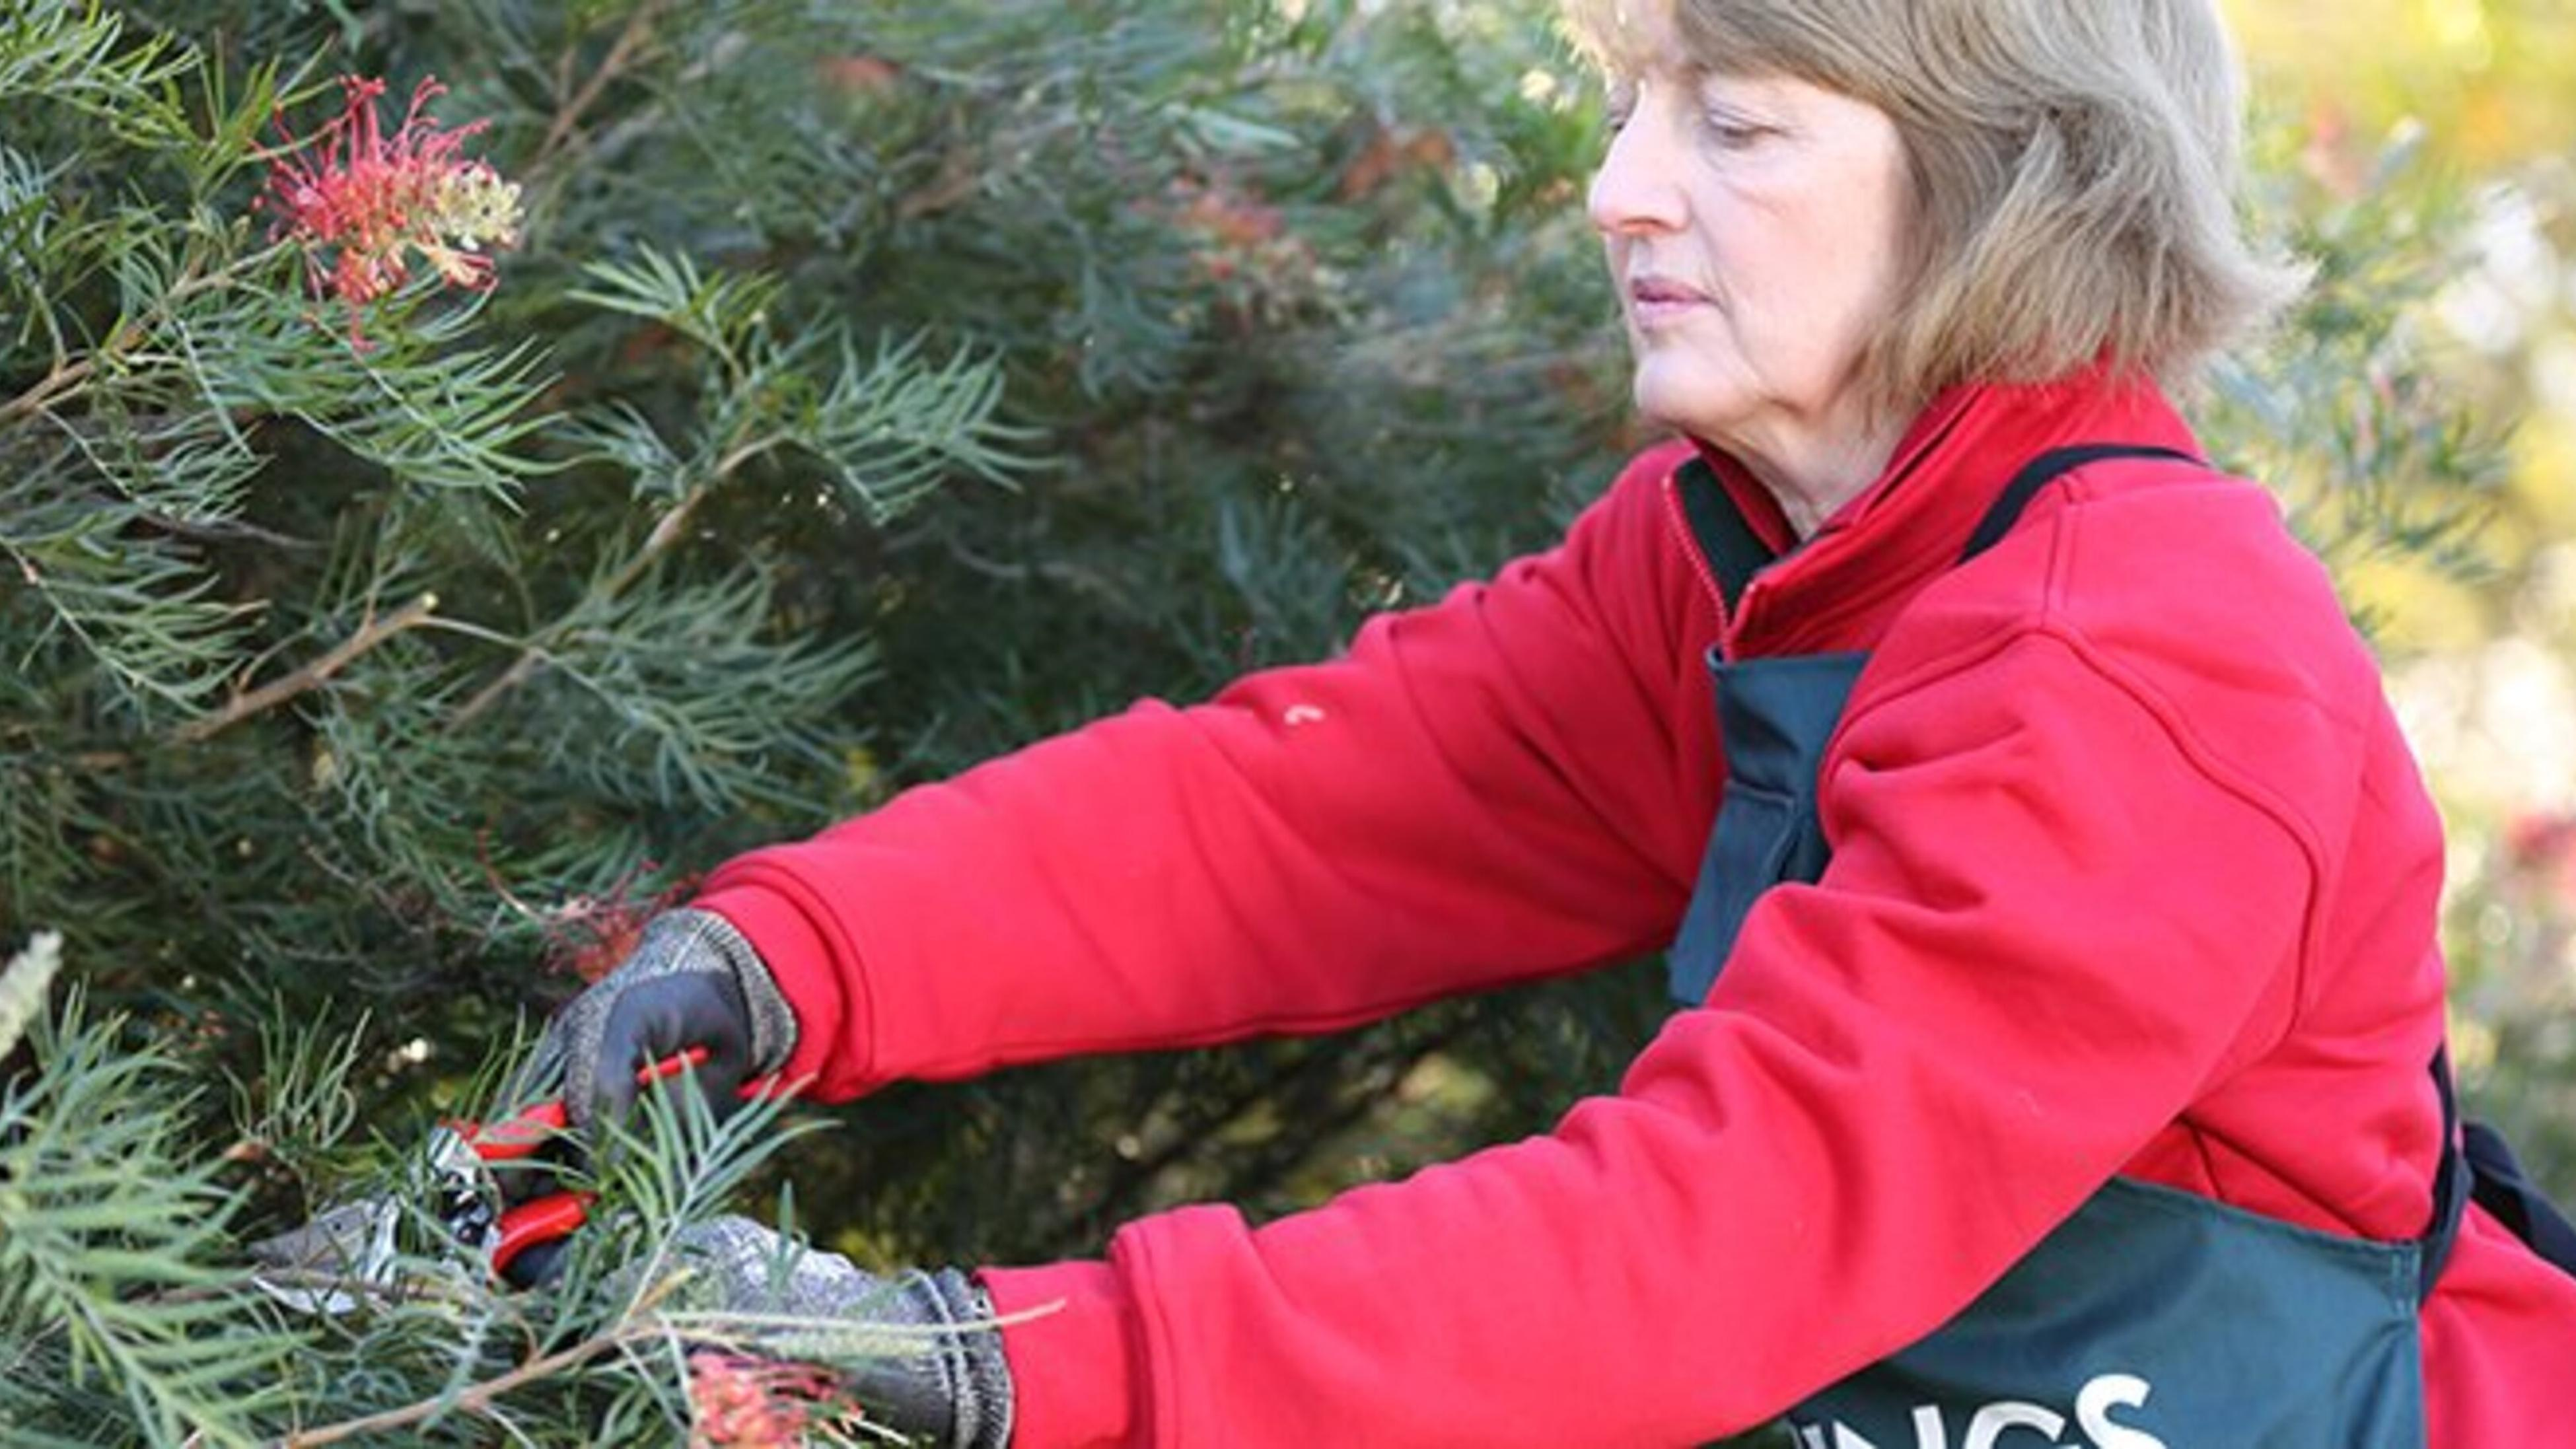 Person pruning plant.